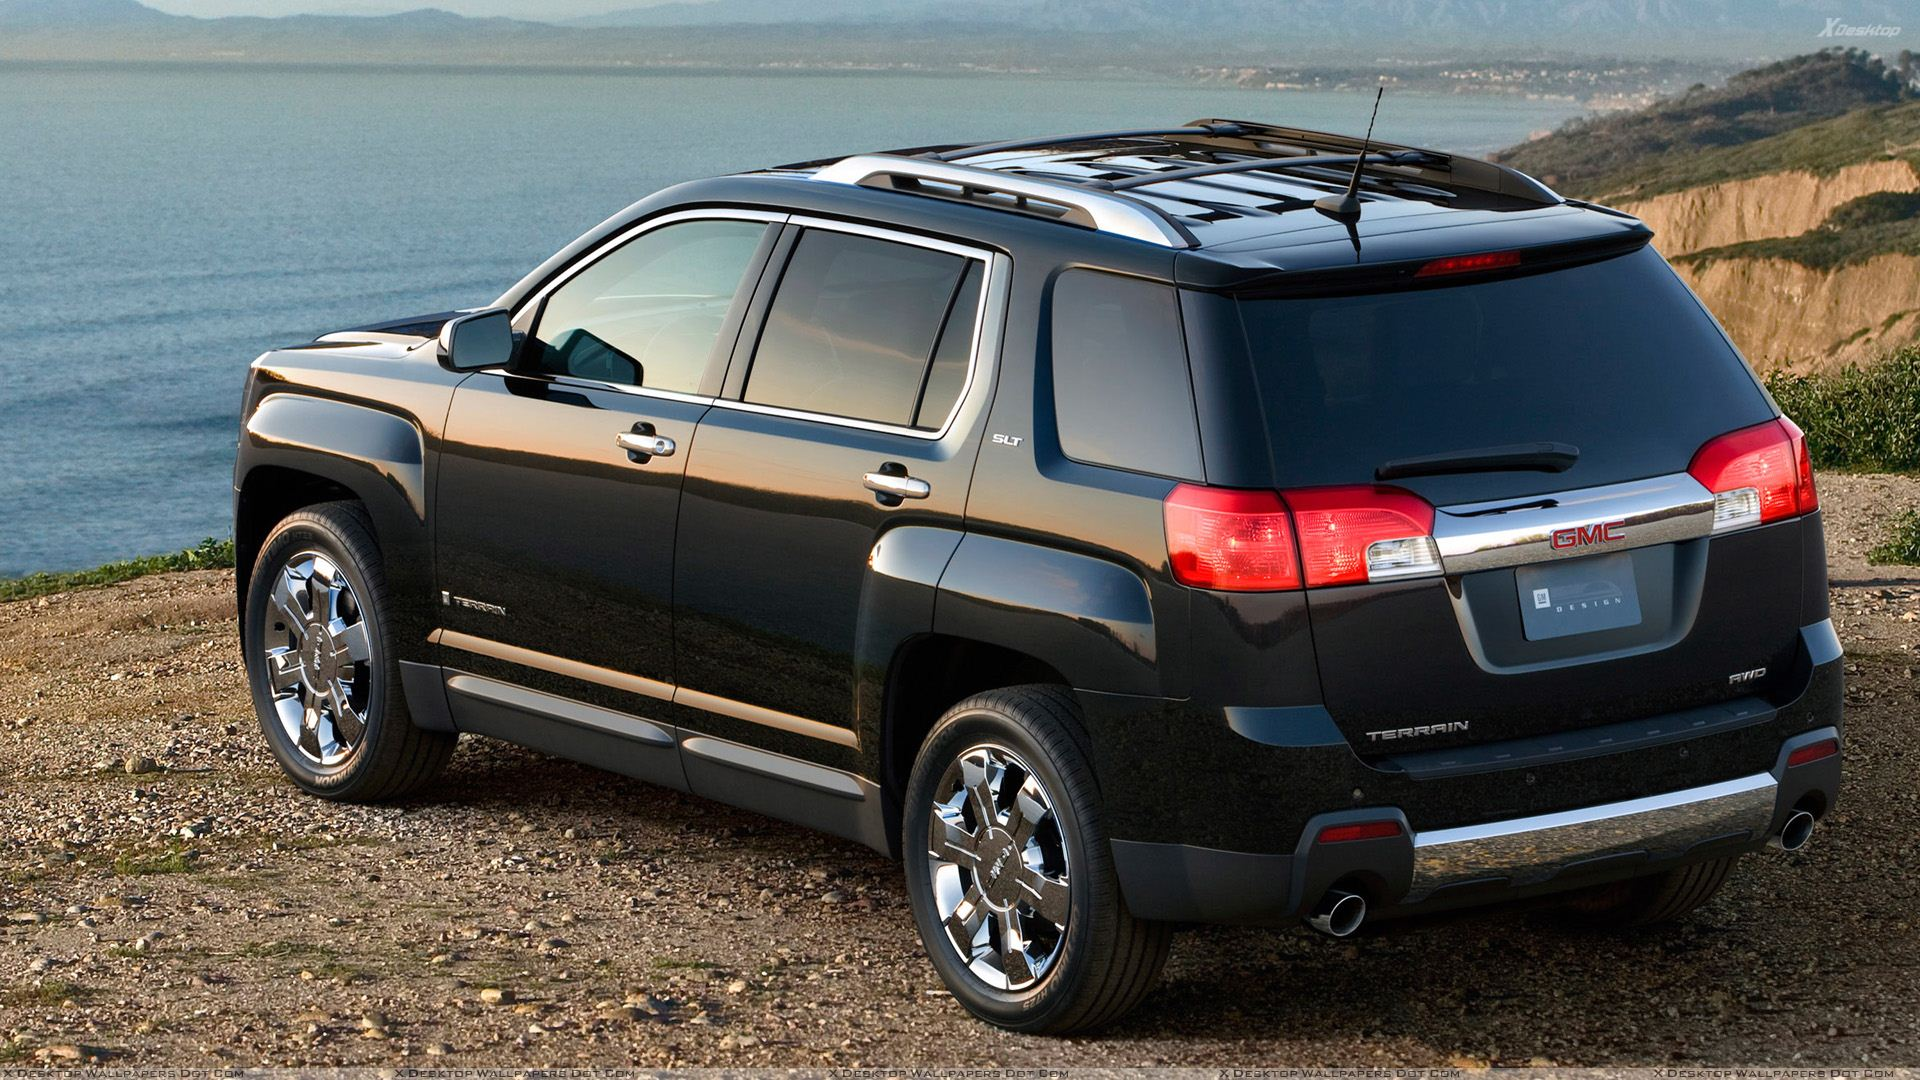 GMC Terrain Wallpapers Photos Images In HD